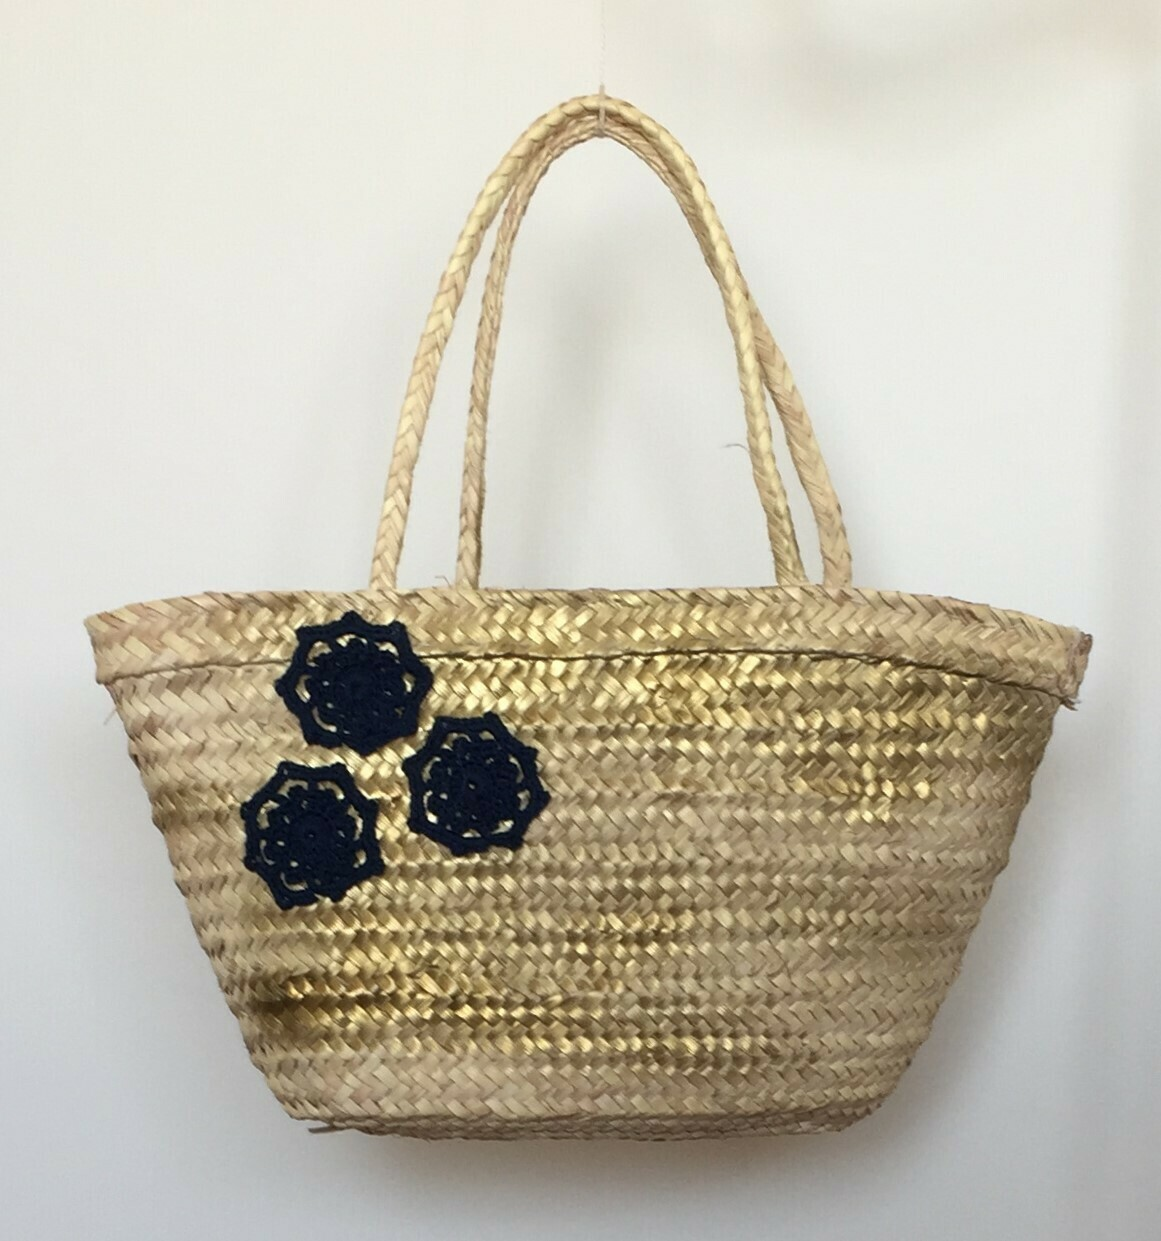 Bag; straw Golden with navy blue flowers